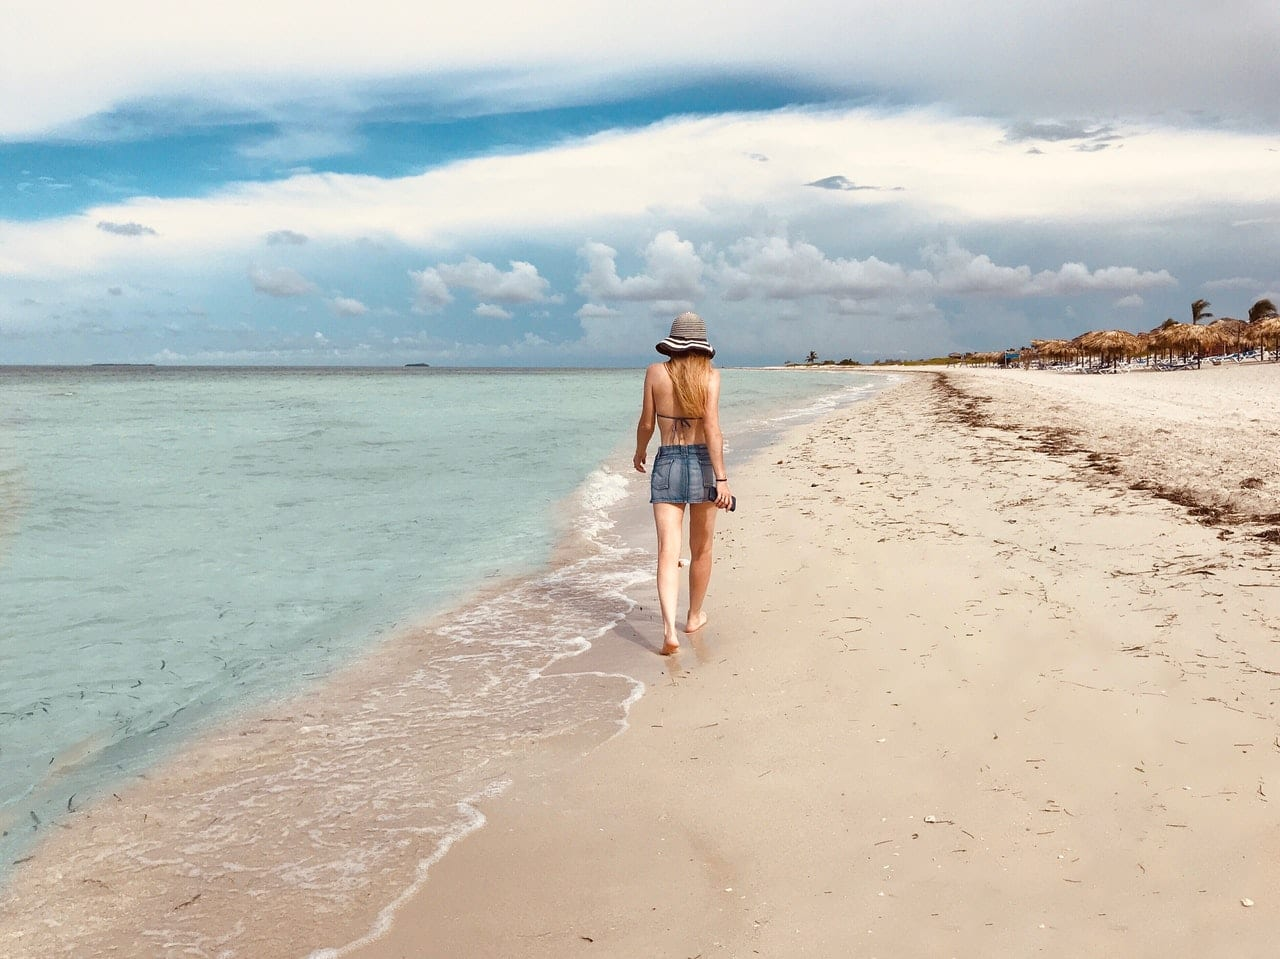 Why wear sunscreen on a cloudy day